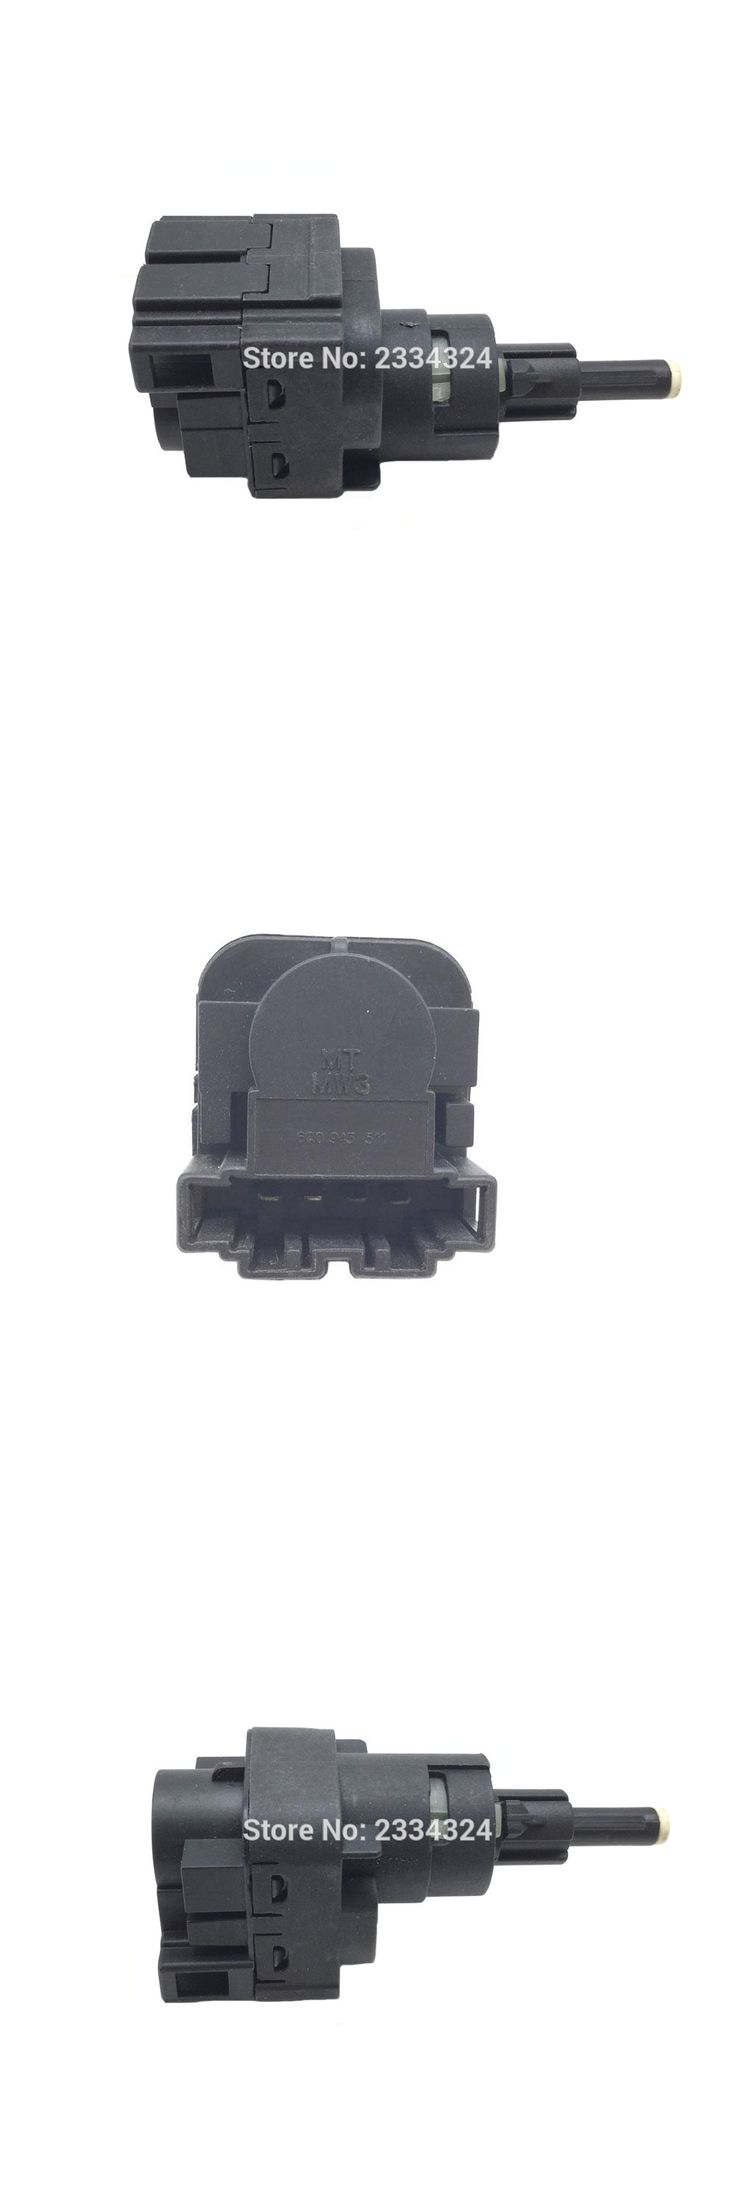 Brake Light Switch Lamp Switch For Audi A3 R8 Seat Altea Cordoba Ibiza Leon Toledo Skoda Fabia Octavia VW Caddy Golf Jetta Polo